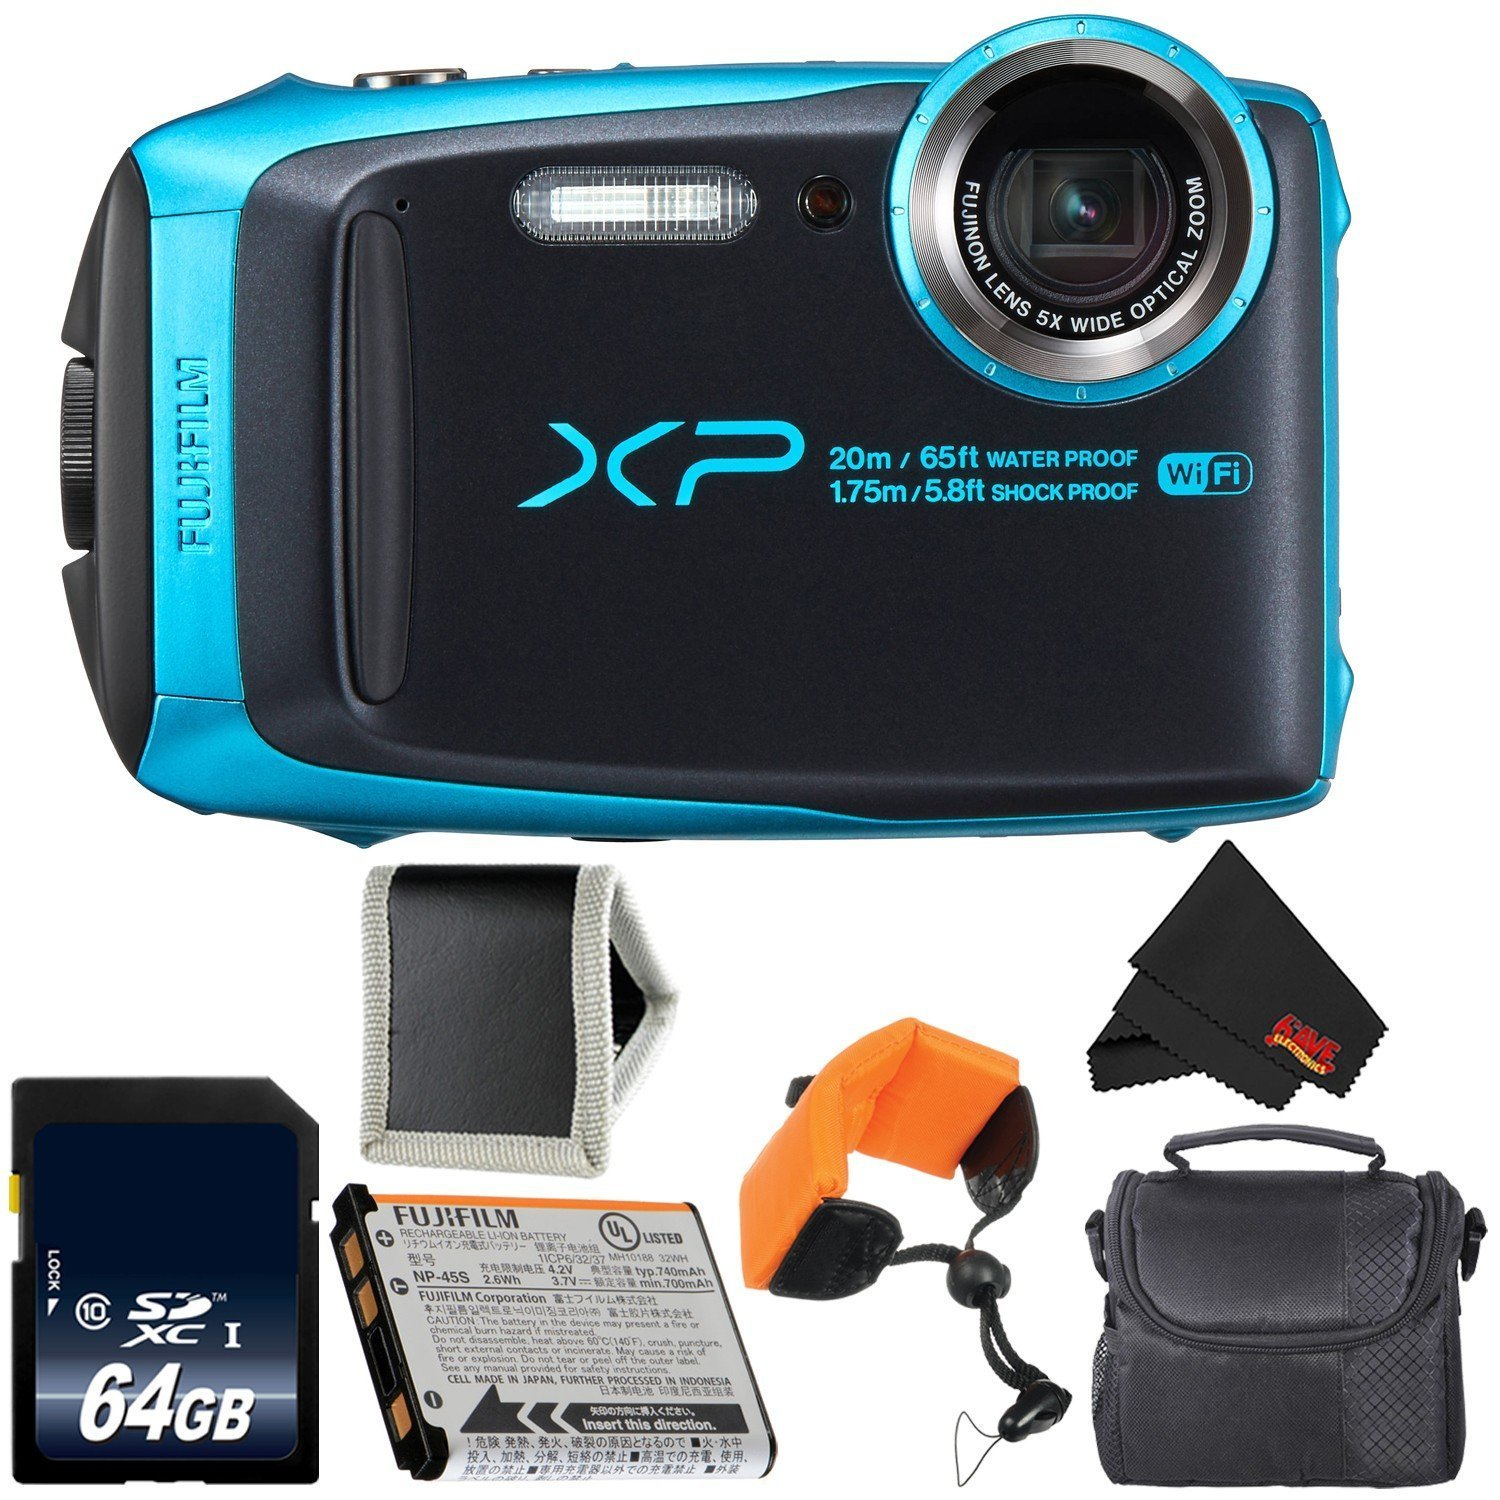 Fujifilm FinePix XP120 Digital Camera (Sky Blue) 600019758 + 64GB SDXC Class 10 Memory Card + FUJI XP RUGGED FLOATING STRAP + Memory Card Wallet + MicroFiber Cloth + Small Soft Carrying Case Bundle